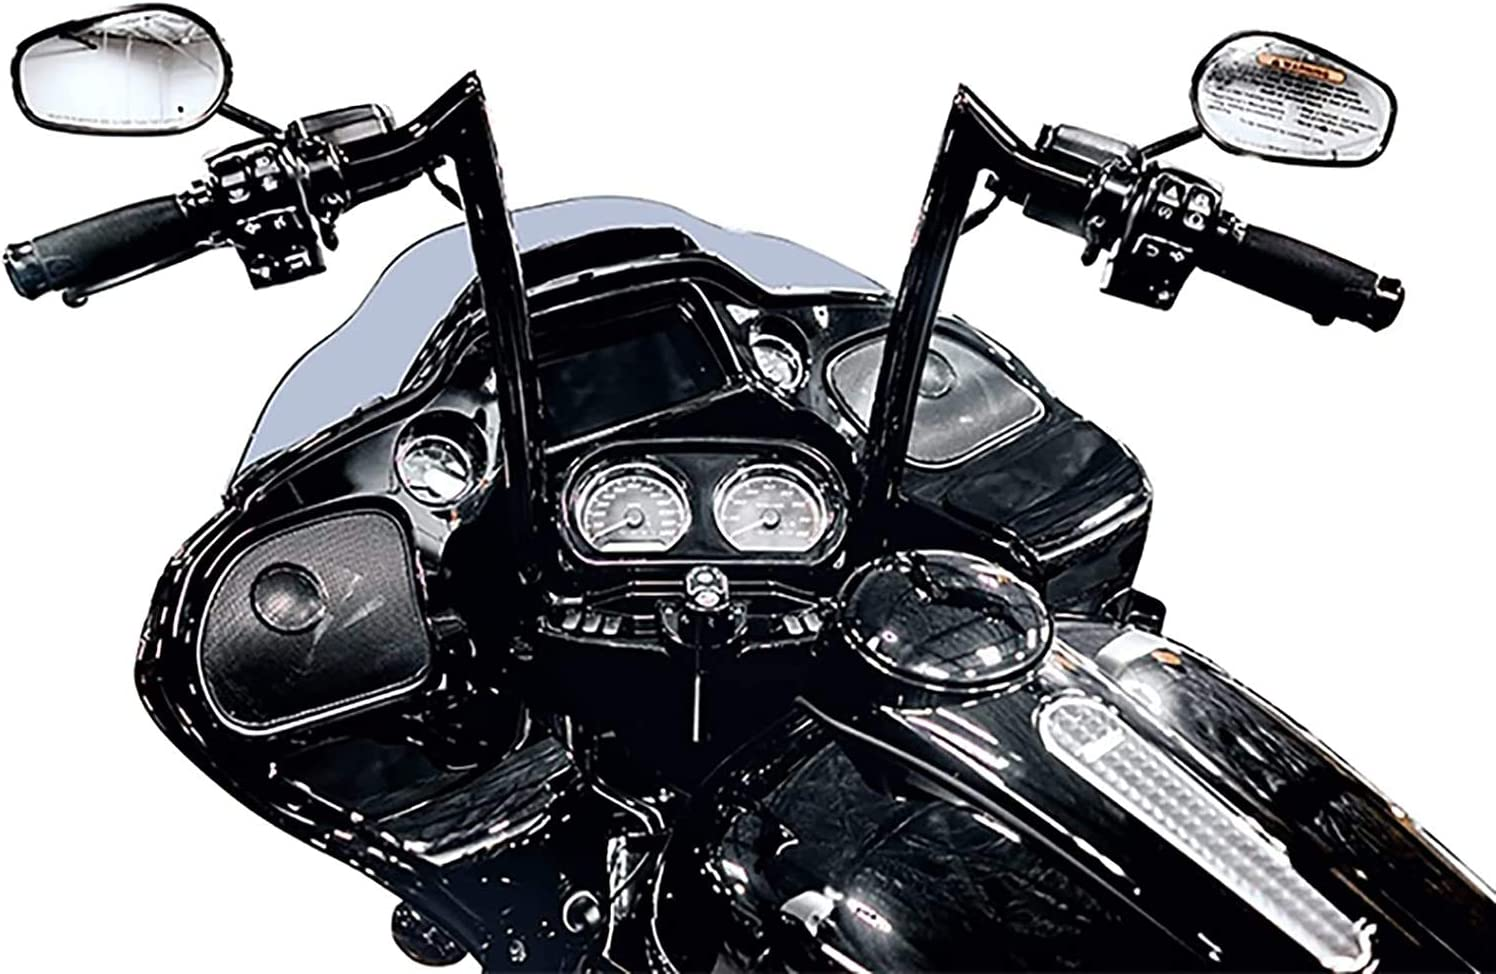 Pre Wired Dominator Industries 14 Inch Rise Chrome for 2015-2020 Harley Road Glides 1 1//4 Inch Road Glide Meathook Monkey Ape Hanger Handlebars